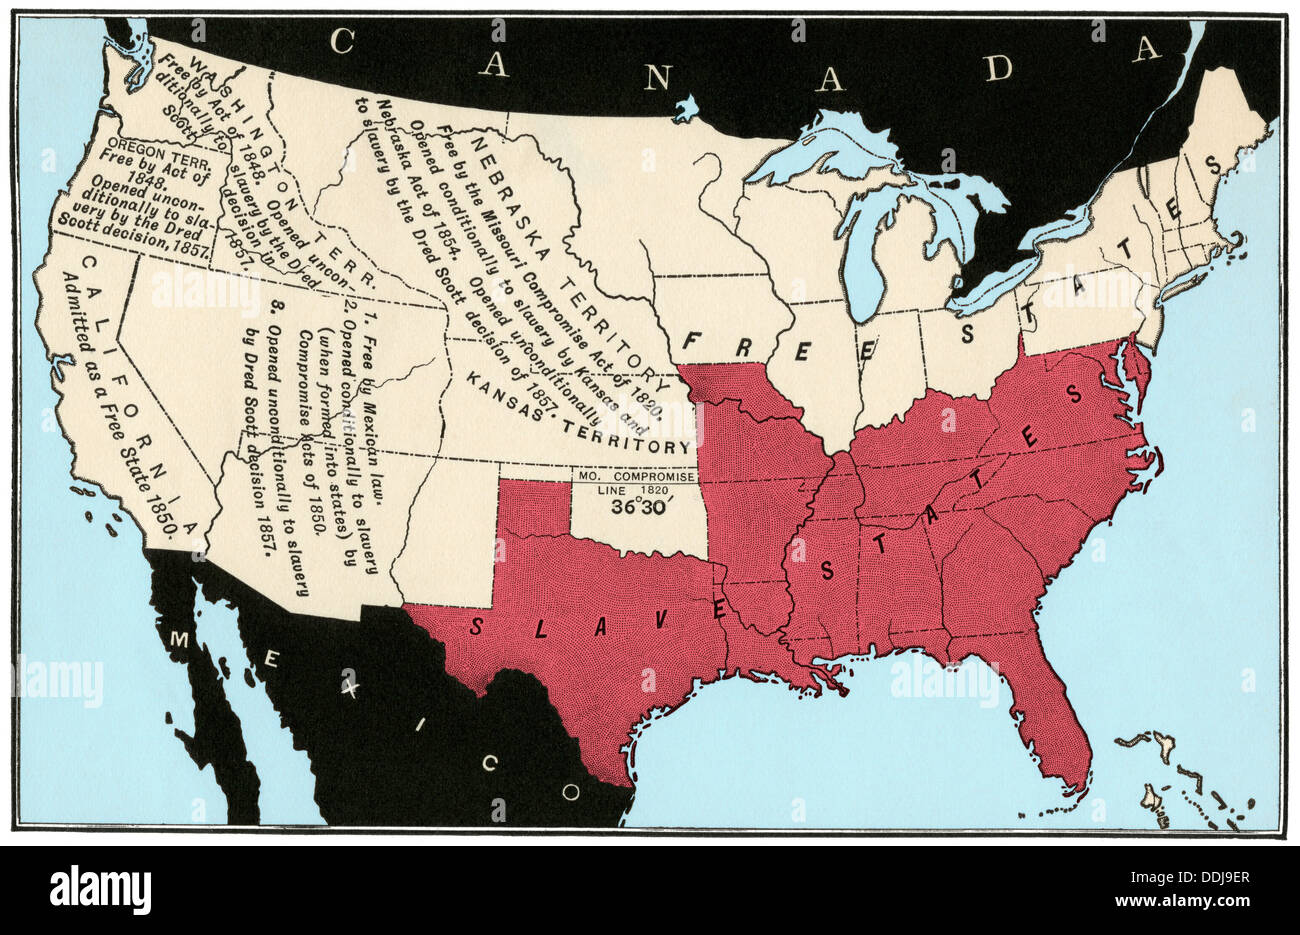 Slavery States Map.Slave States Map Stock Photos Slave States Map Stock Images Alamy